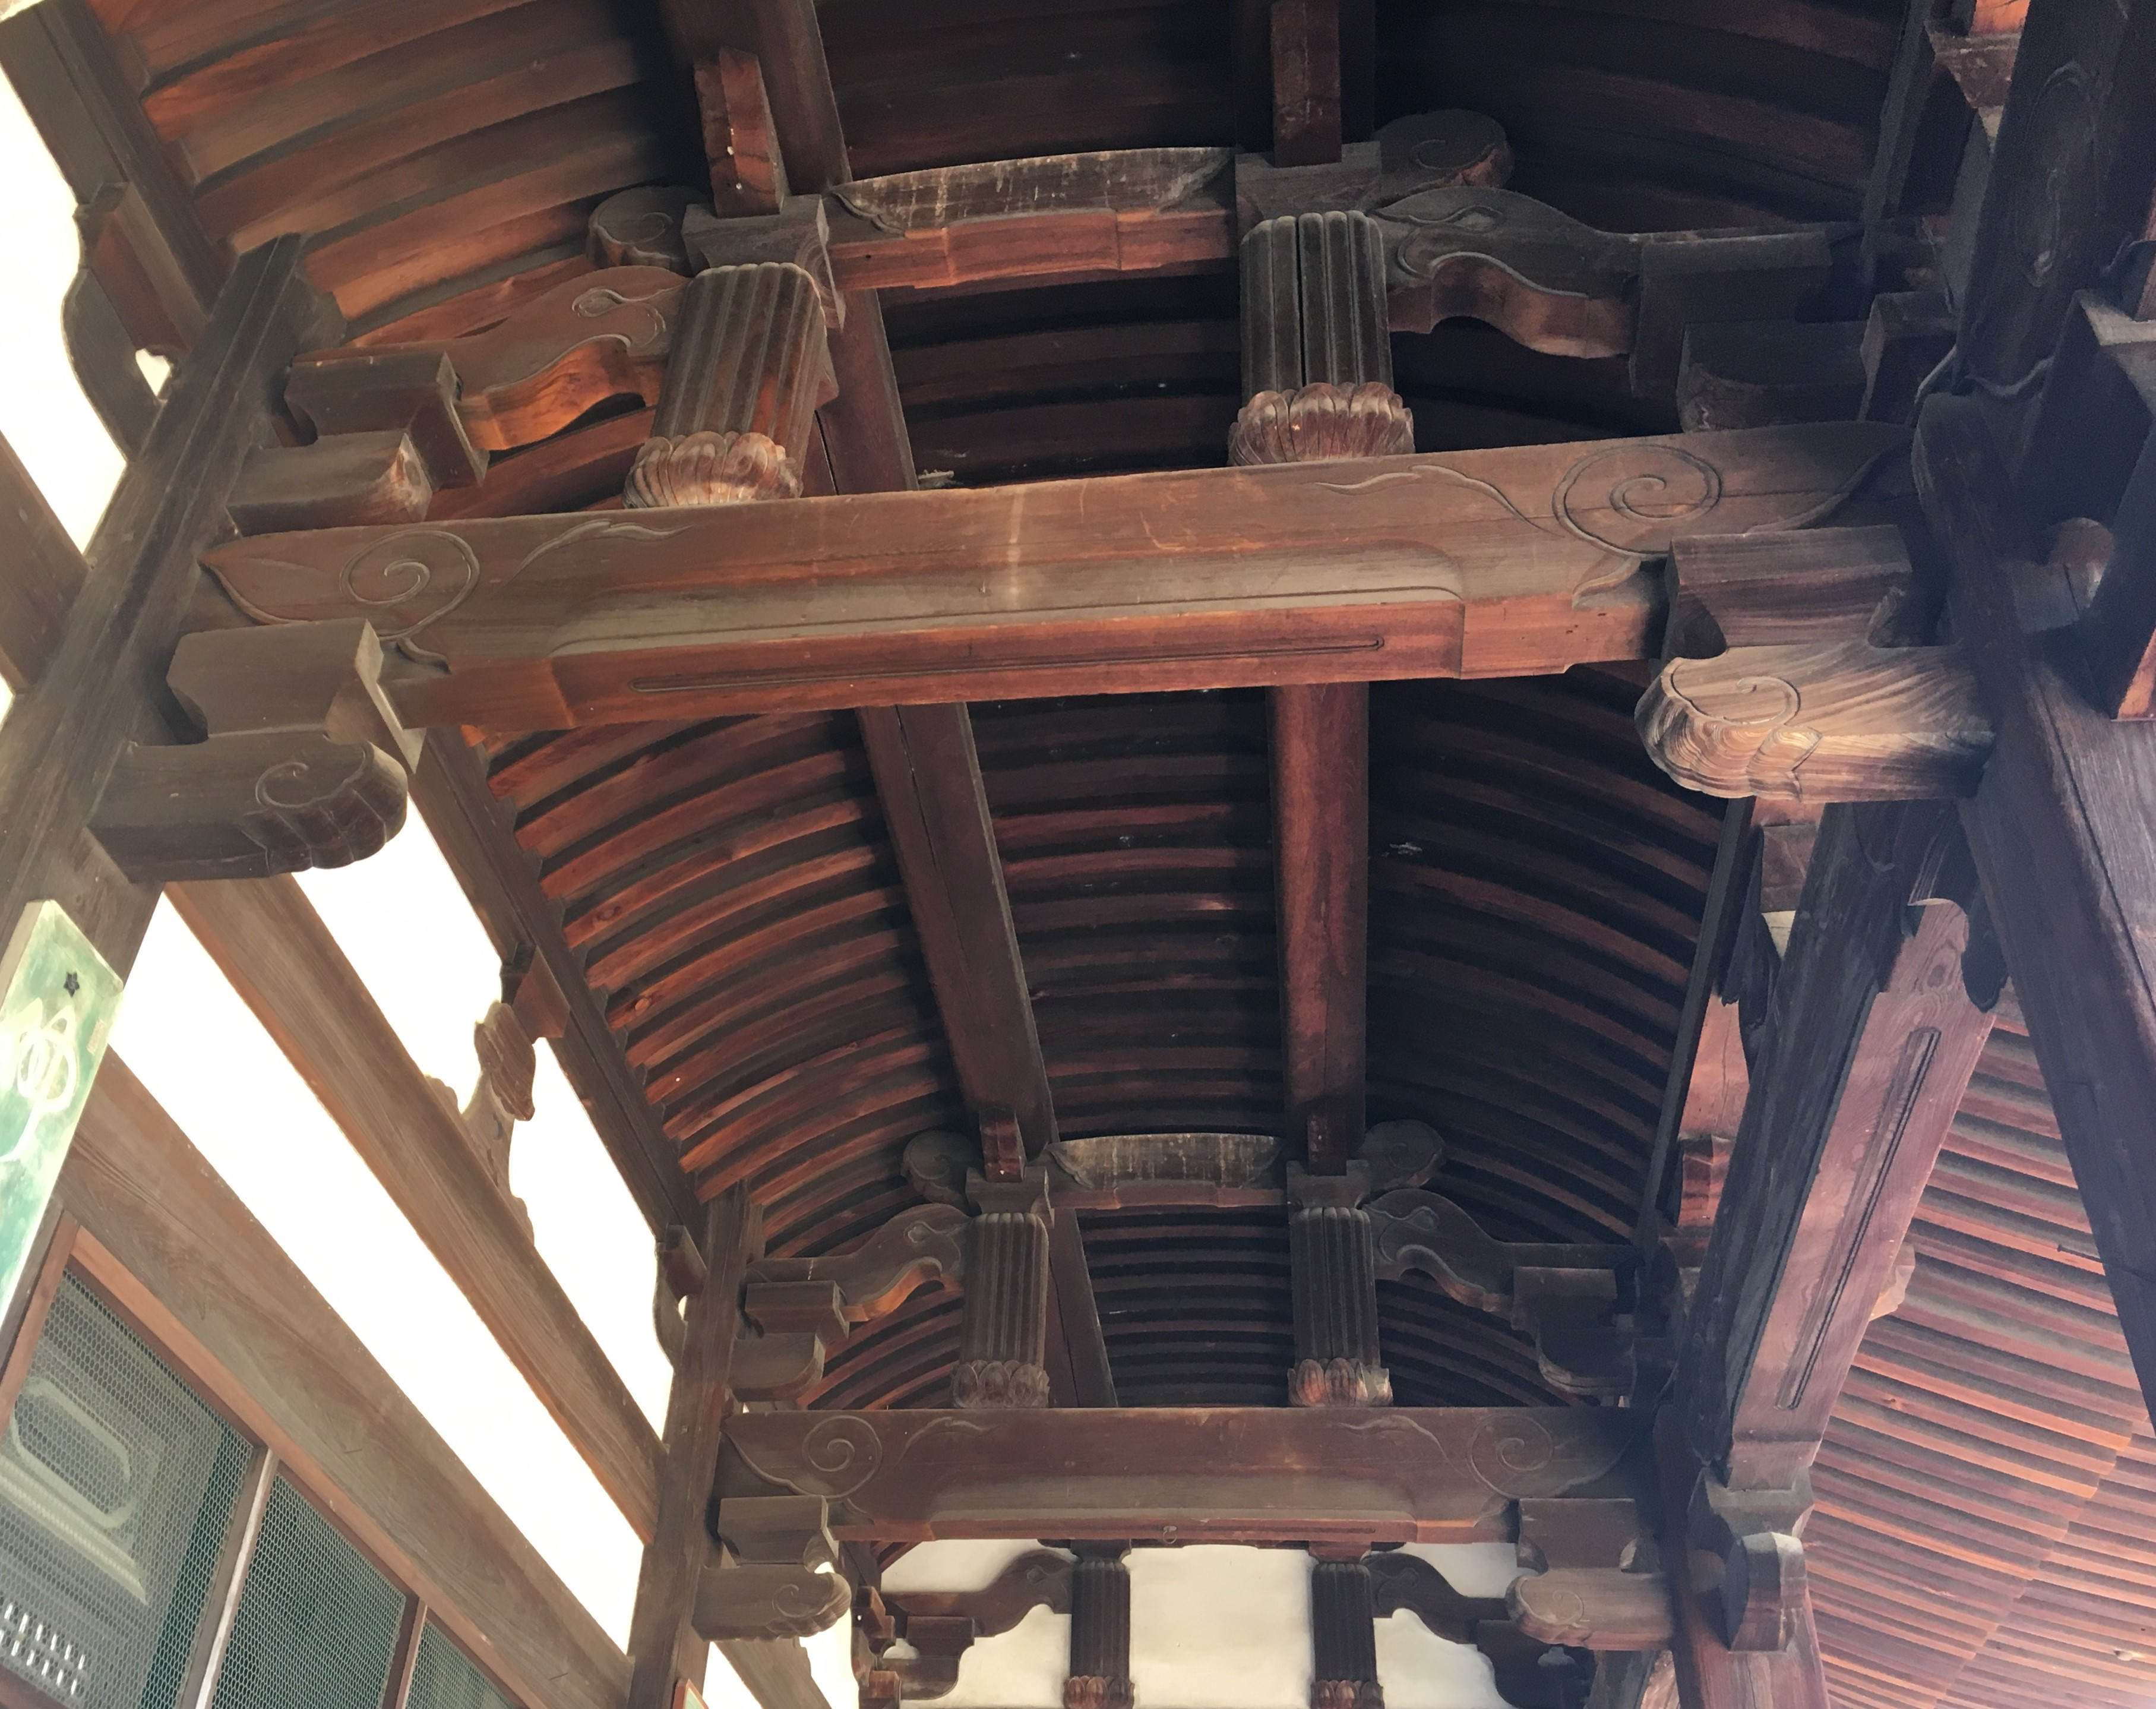 arched roof style architecture of manpuku-ji tempel